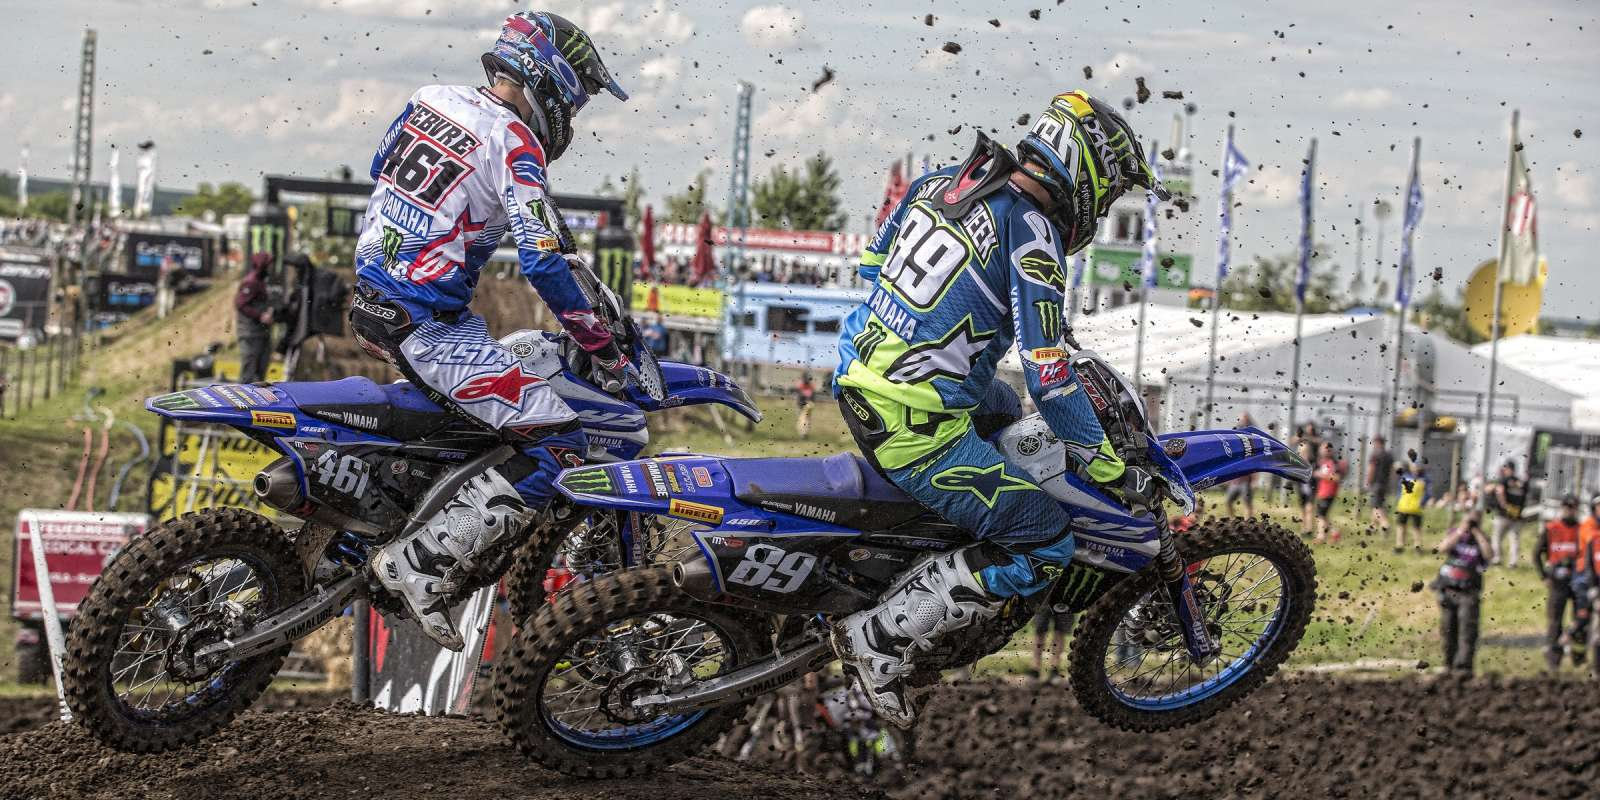 Romain Febvre & Jeremy Van Horebeek at the 2017 Grand Prix of Germany